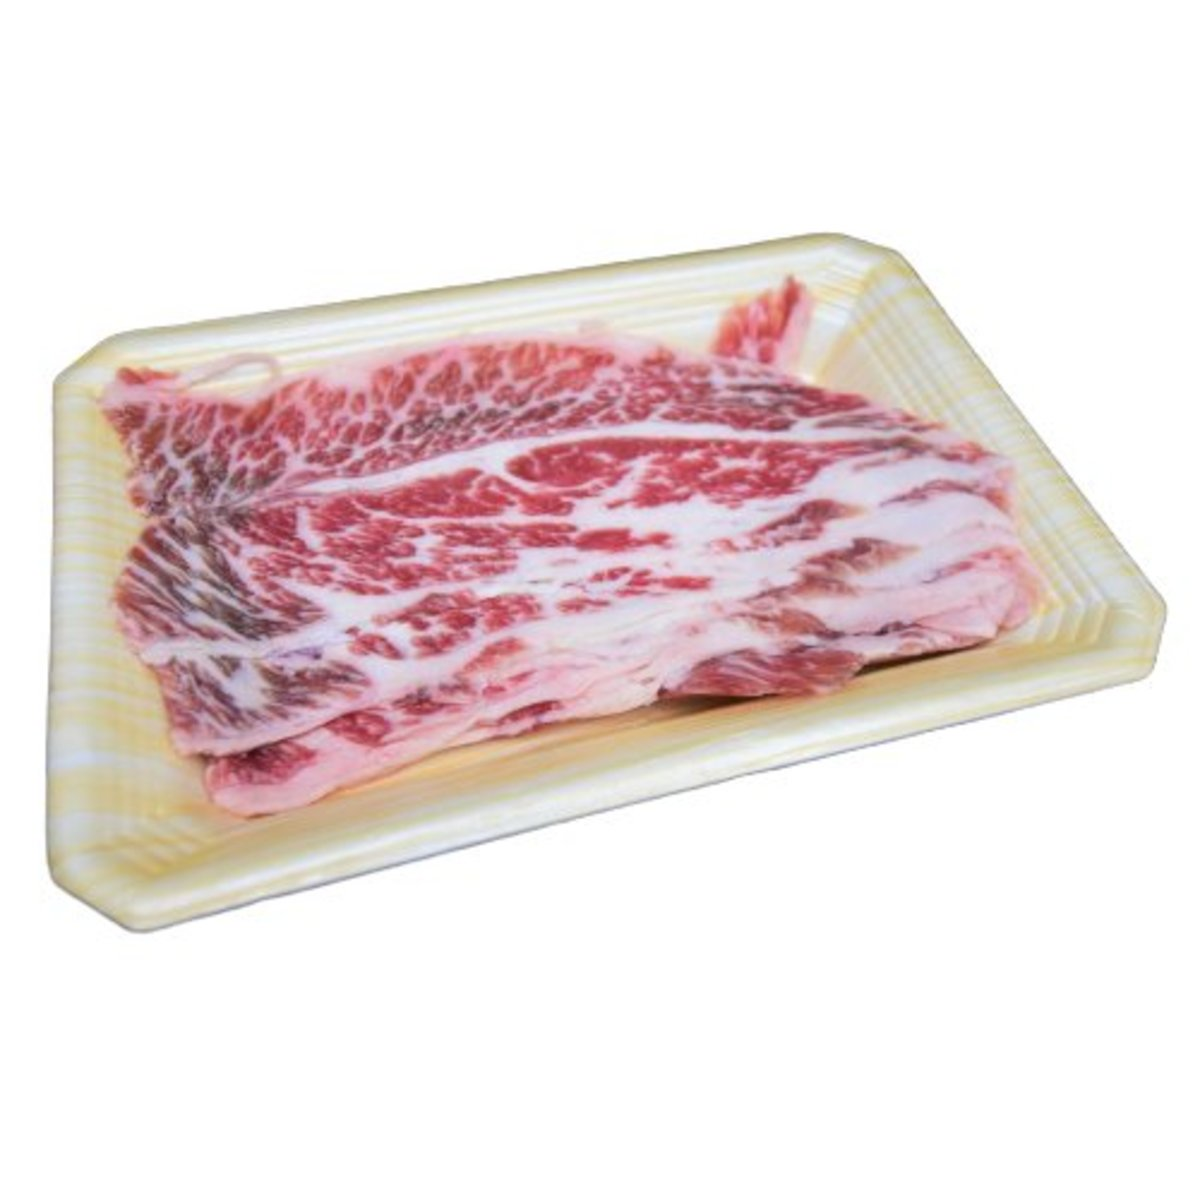 USA Angus Beef Short Rib Sliced(Prime)(200g) (Frozen)